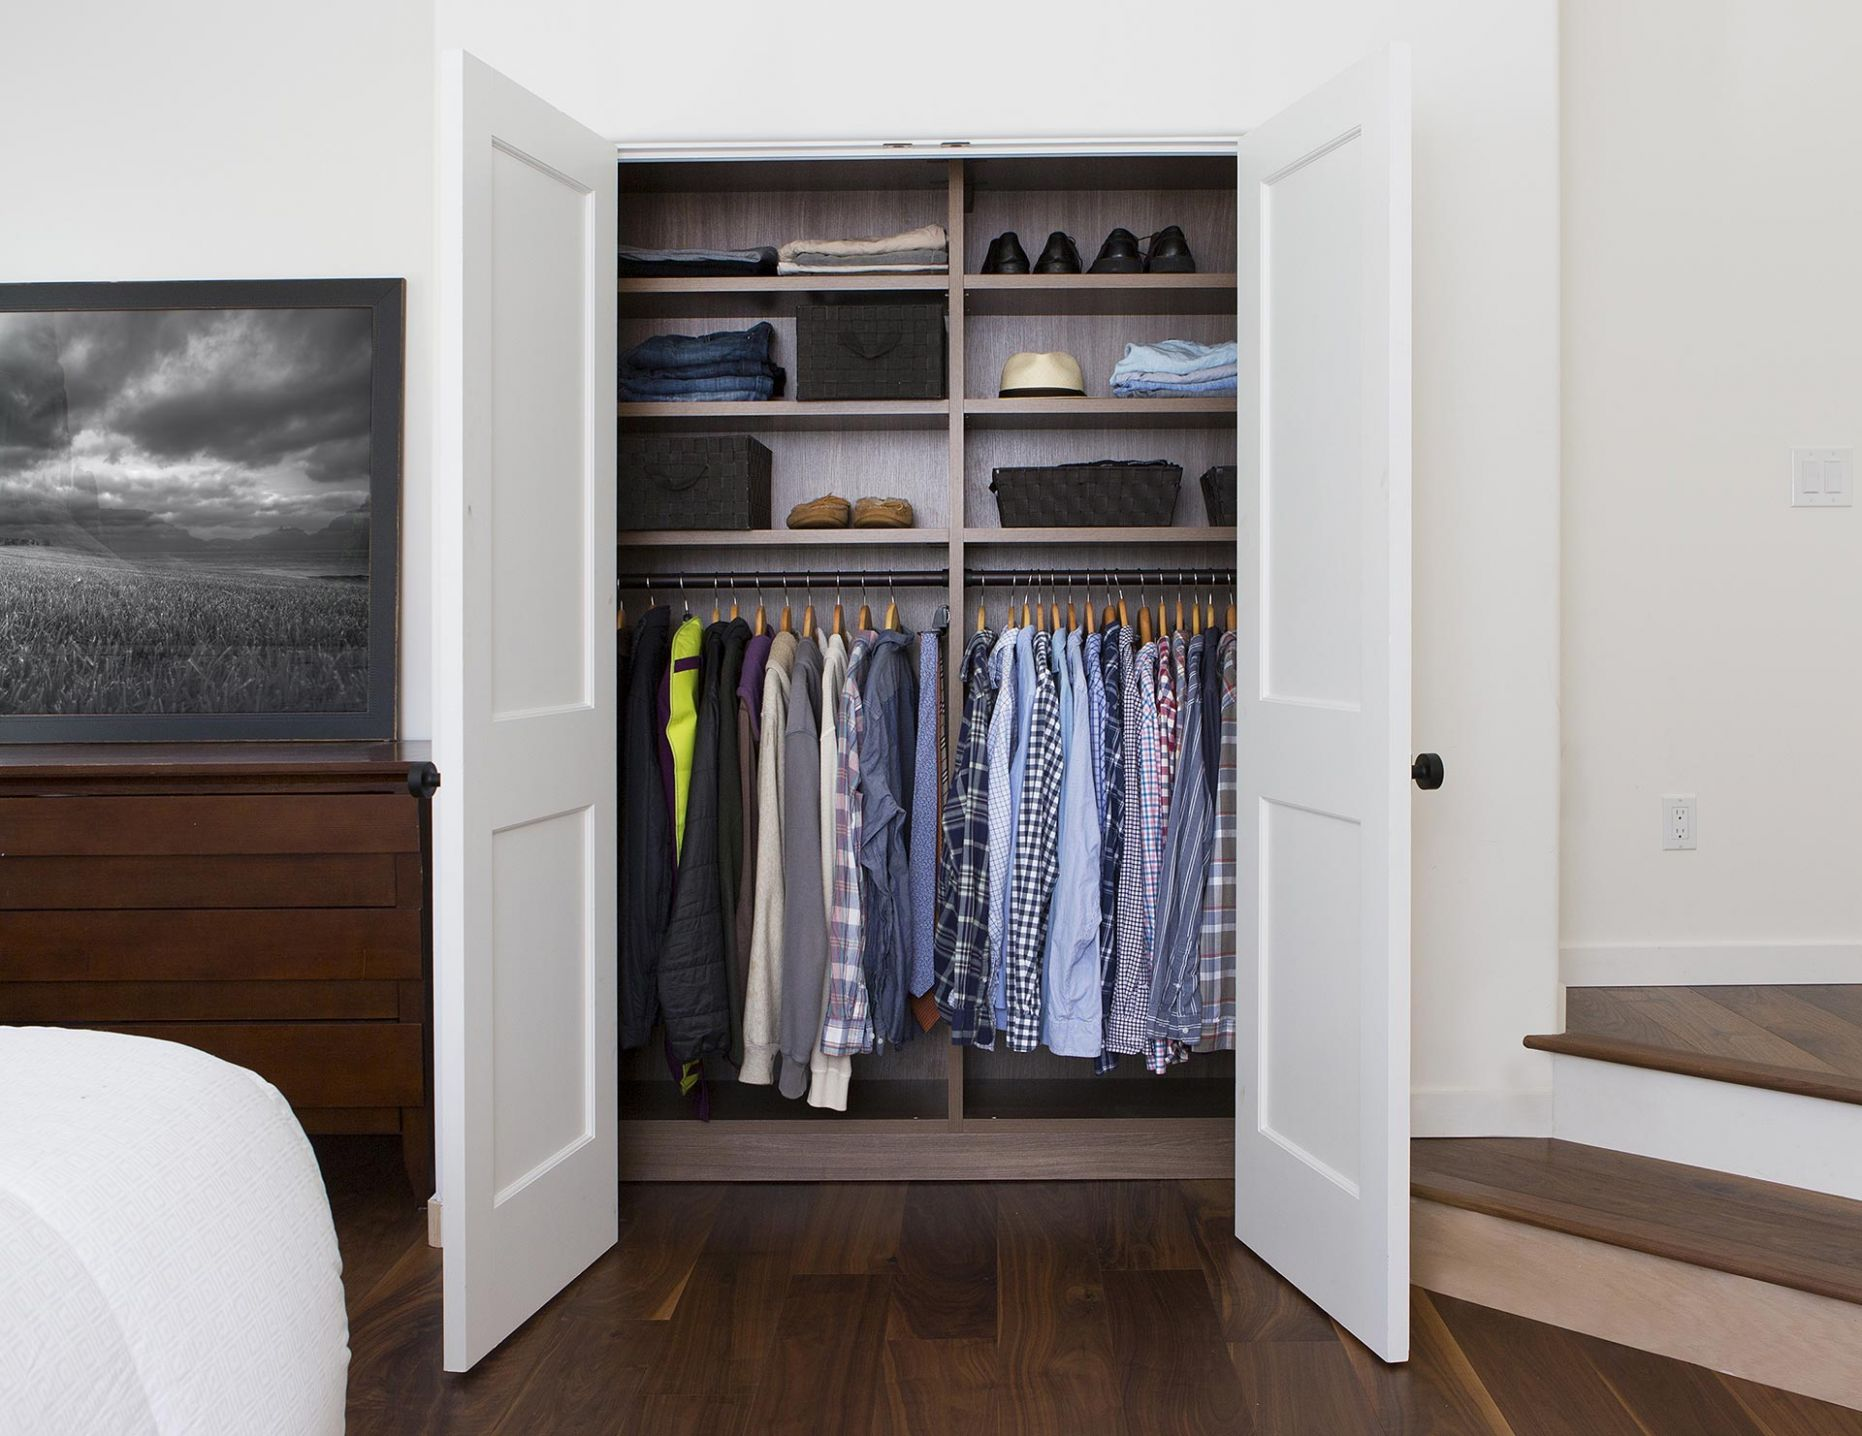 Small Space Storage Solutions & Design Ideas | California Closets